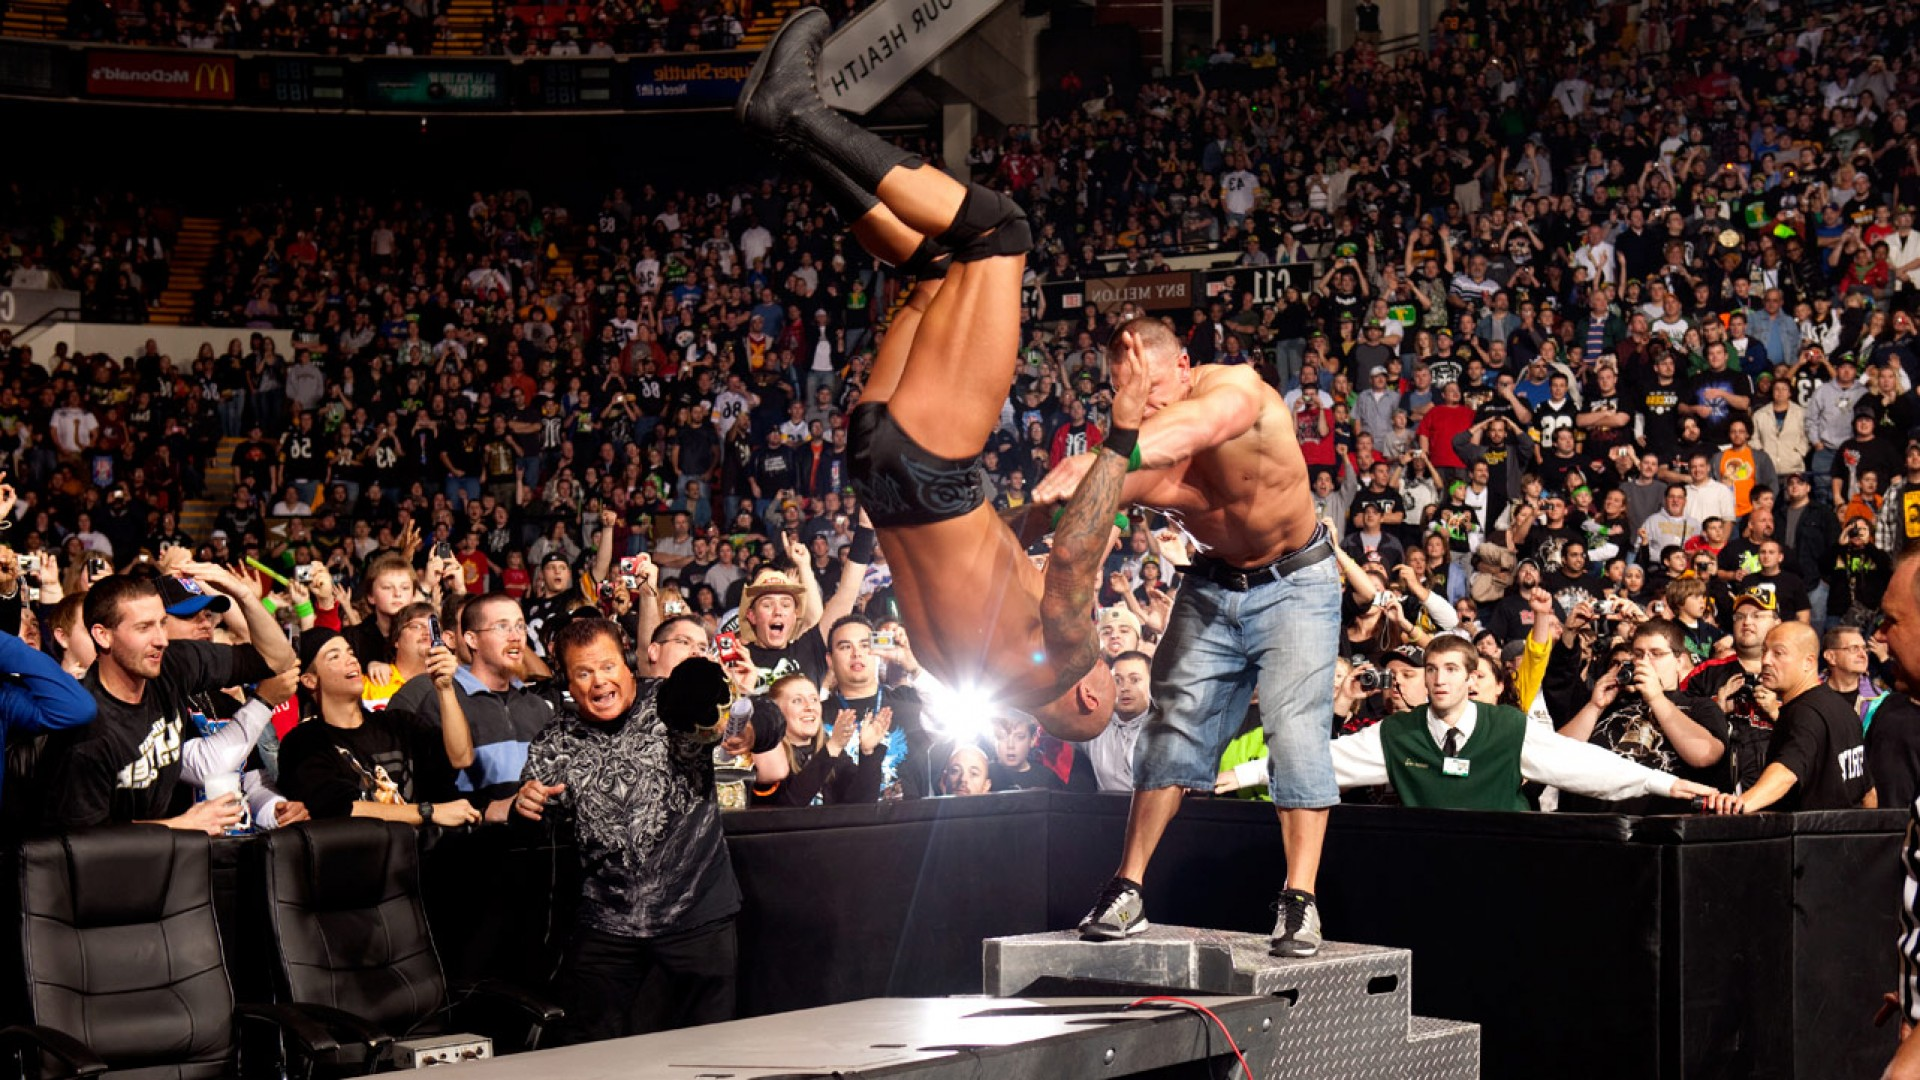 John Cena Fight Against The Rock WWE Wrestling HD Wallpaperjpg 1920x1080